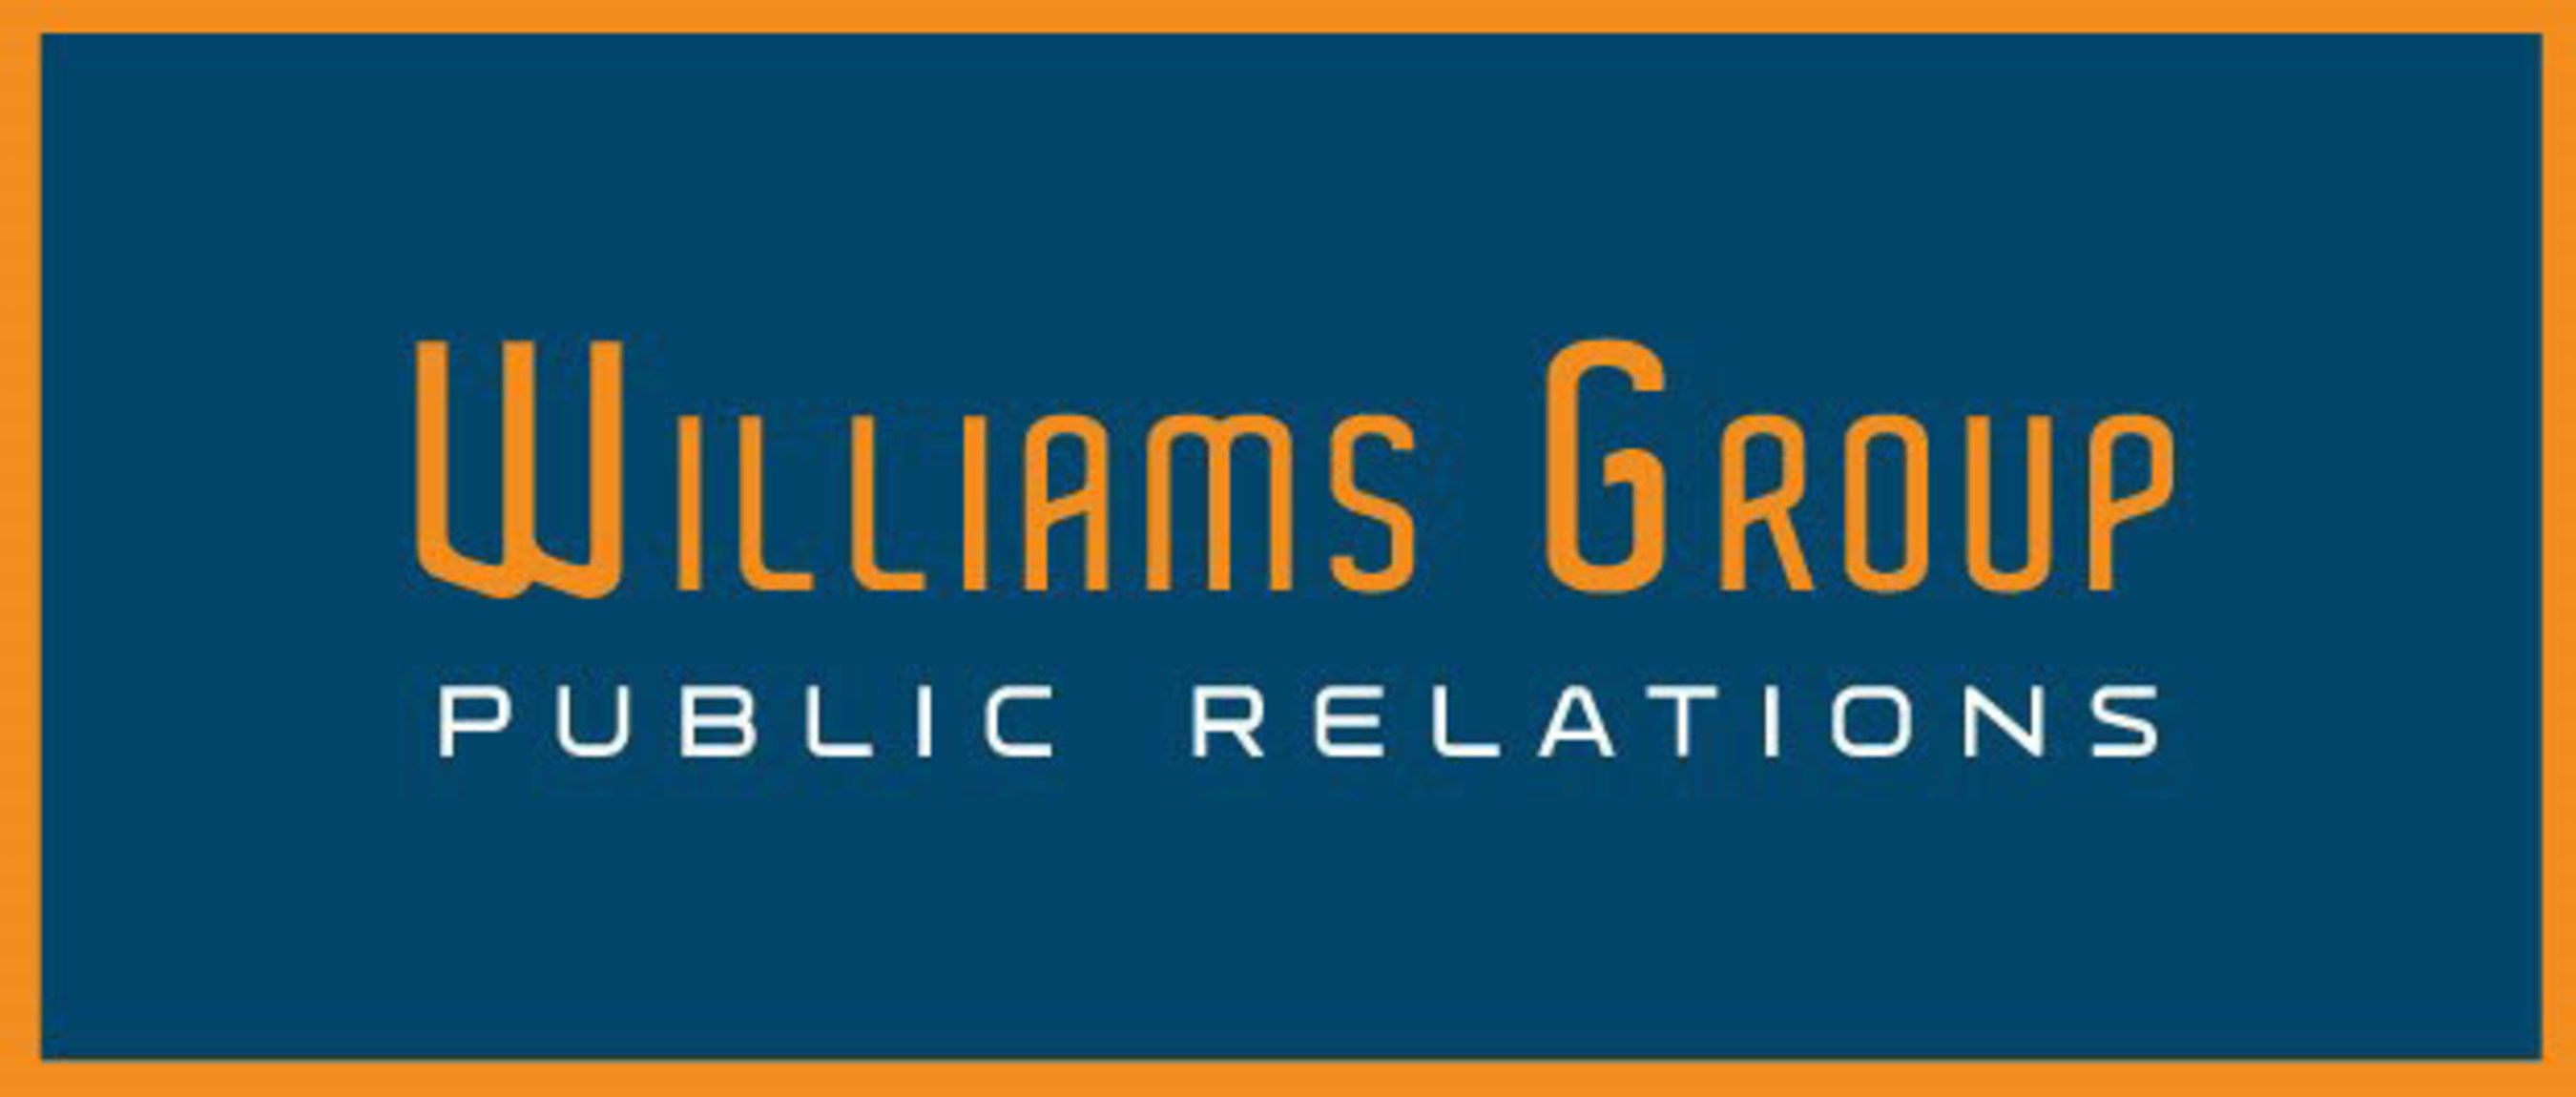 WILLIAMS GROUP PUBLIC RELATIONS NAMED U.S. AGENCY OF RECORD FOR U.K.'S BANTER BOARD GAMES